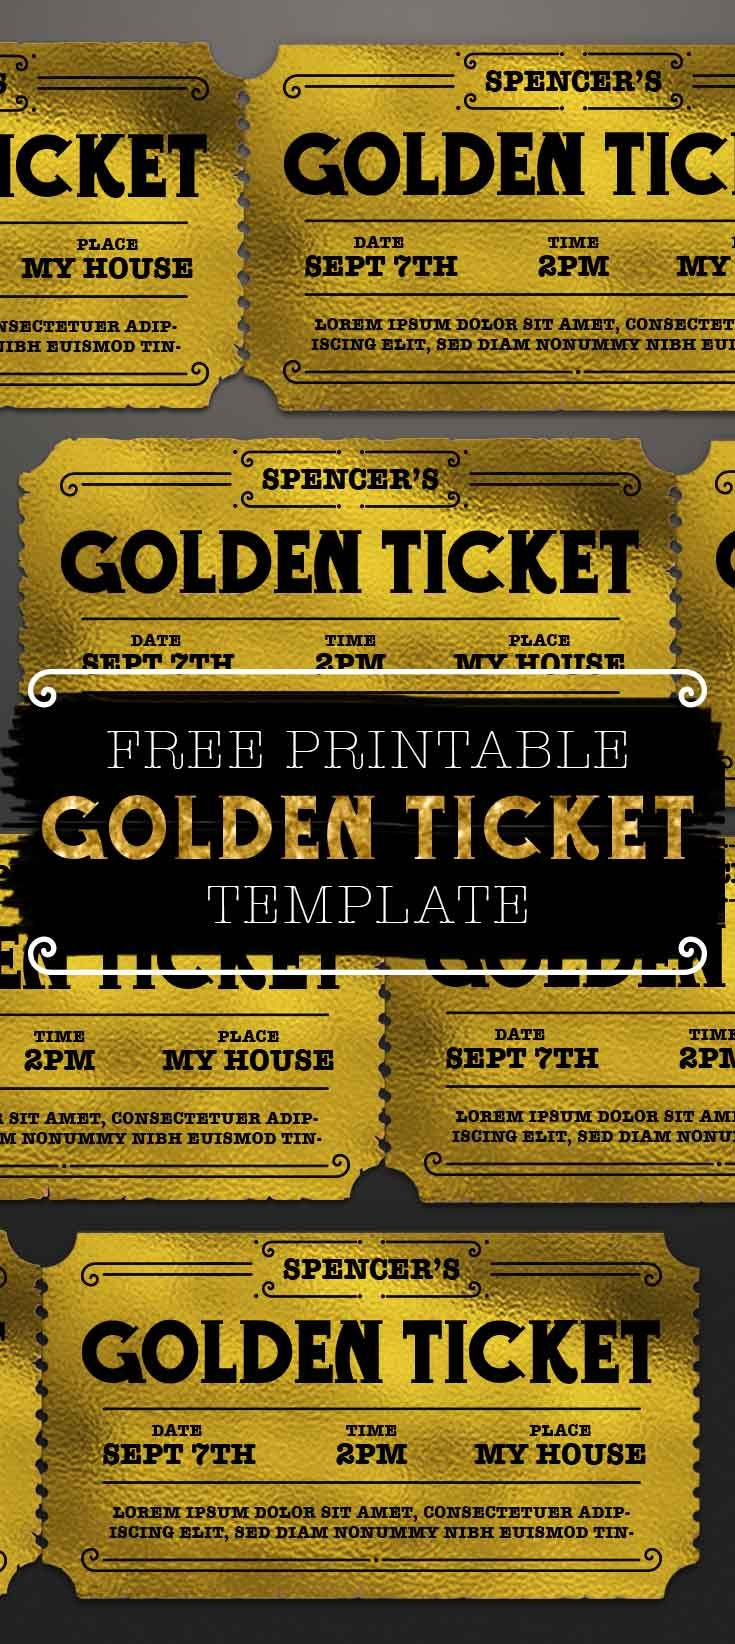 This golden ticket template can be personalized with your own custom text goldenticket freeprintable freeprintables ticket